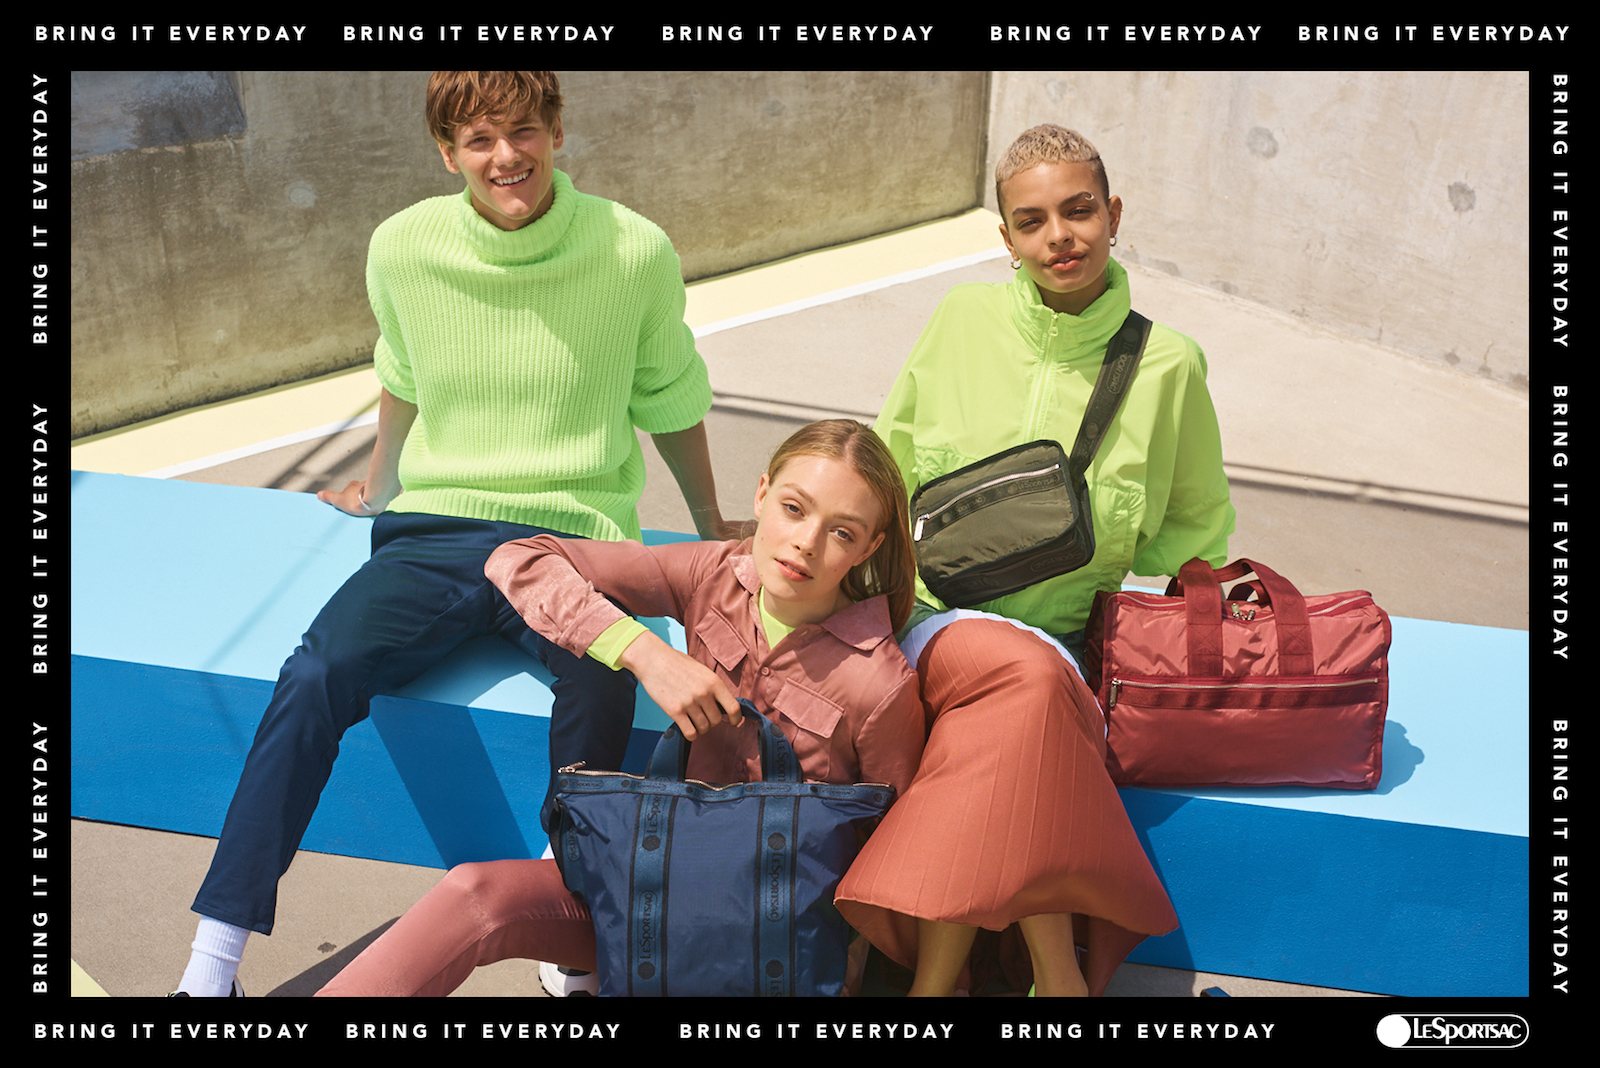 LeSportsac_20190604_Layout_FallHorizontal_02 copy.jpg